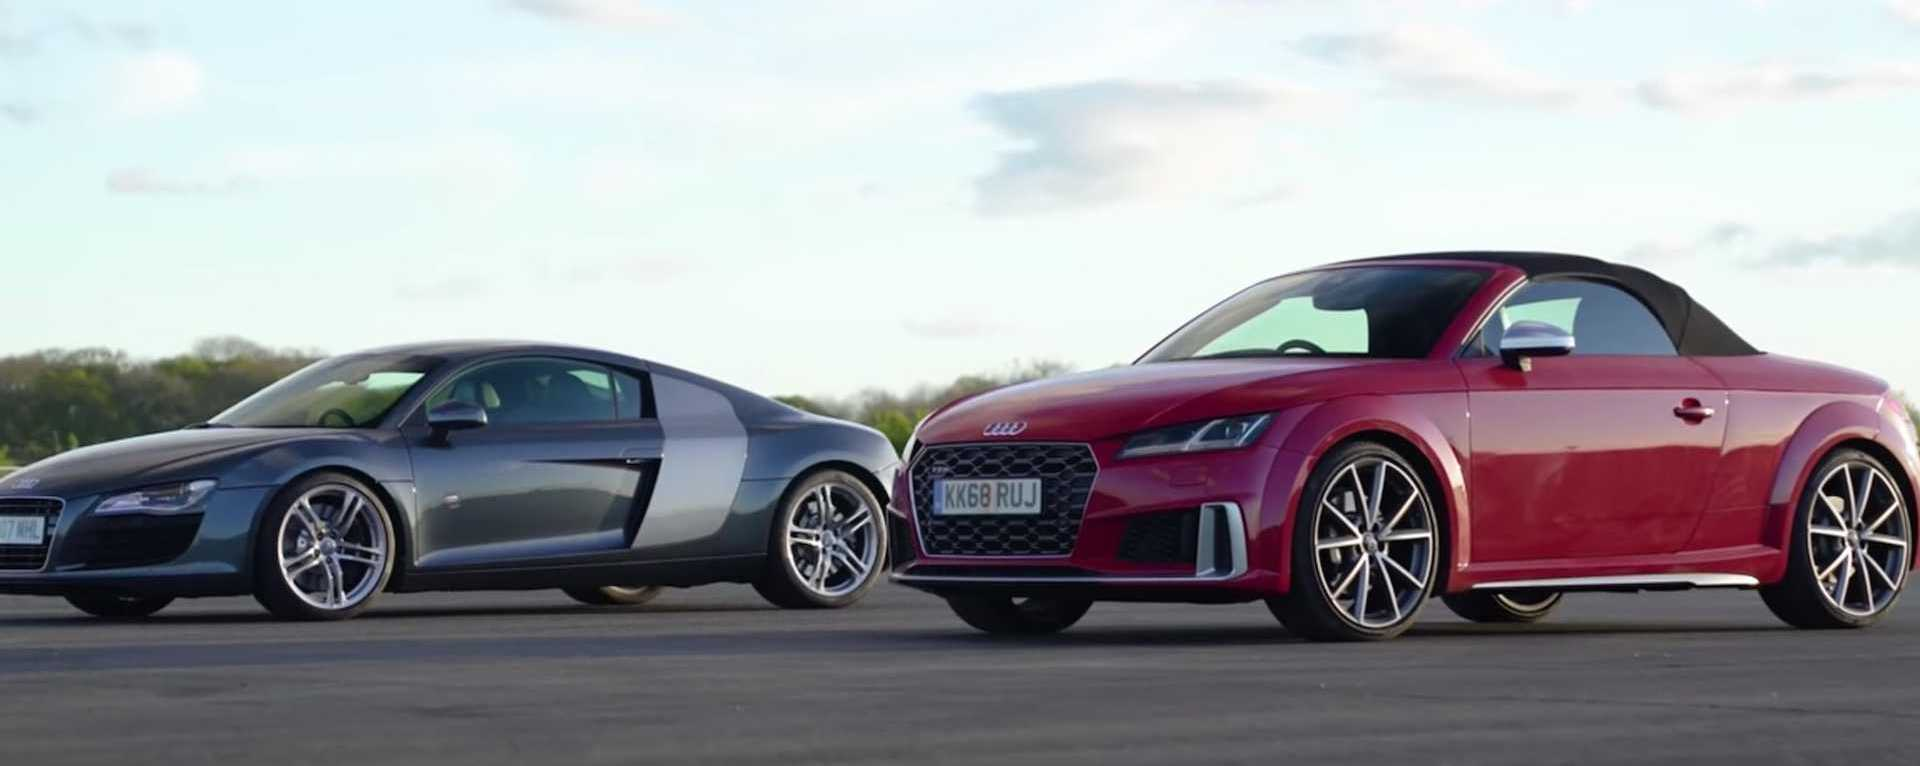 See 2008 Audi R8 V8 Drag Race The Latest TTS Roadster